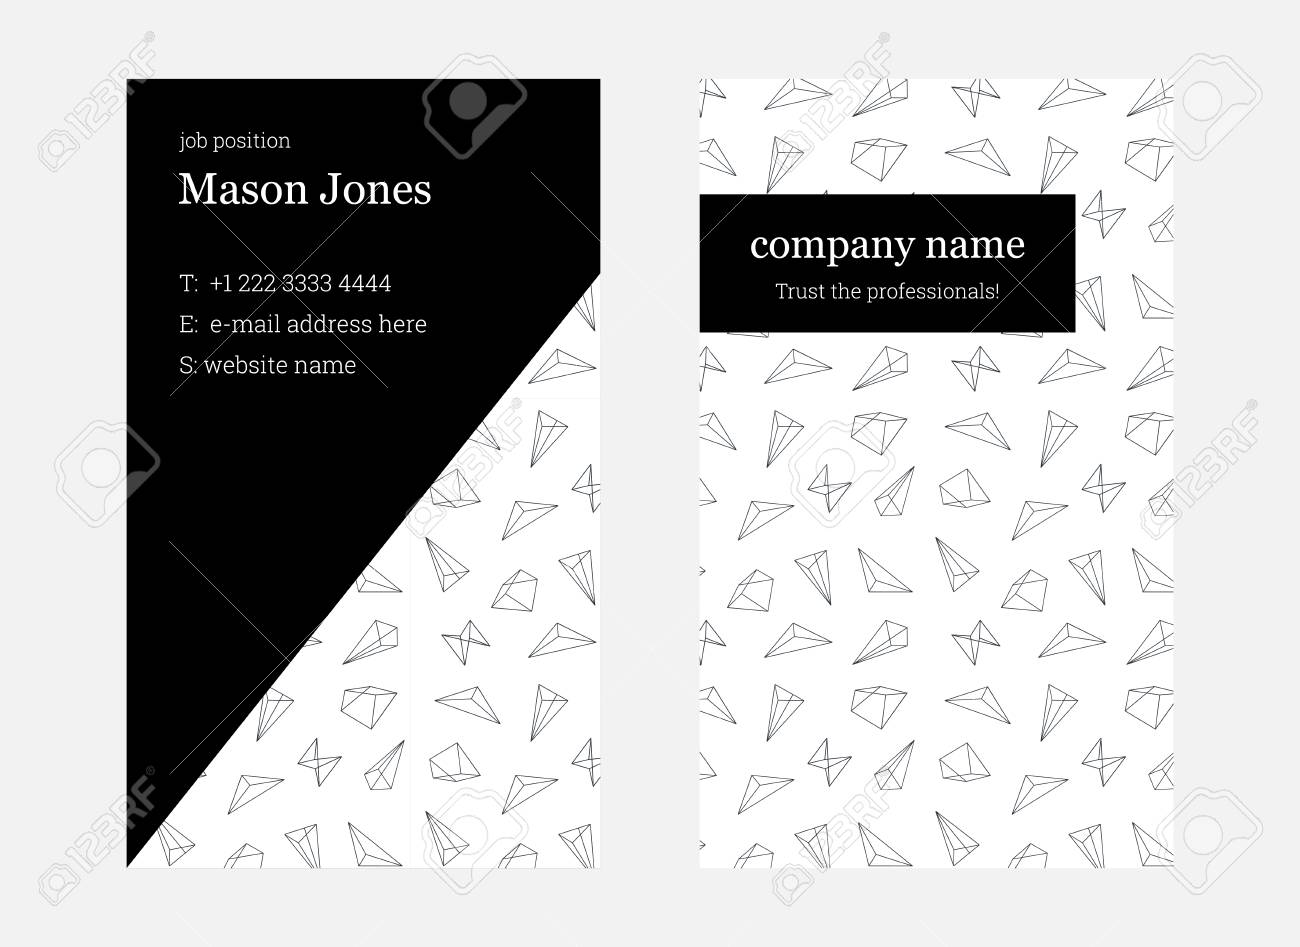 White and pink double sided business card template us standard vector white and pink double sided business card template us standard size 2x35 in with bleed size 0125 in vector minimal and light style colourmoves